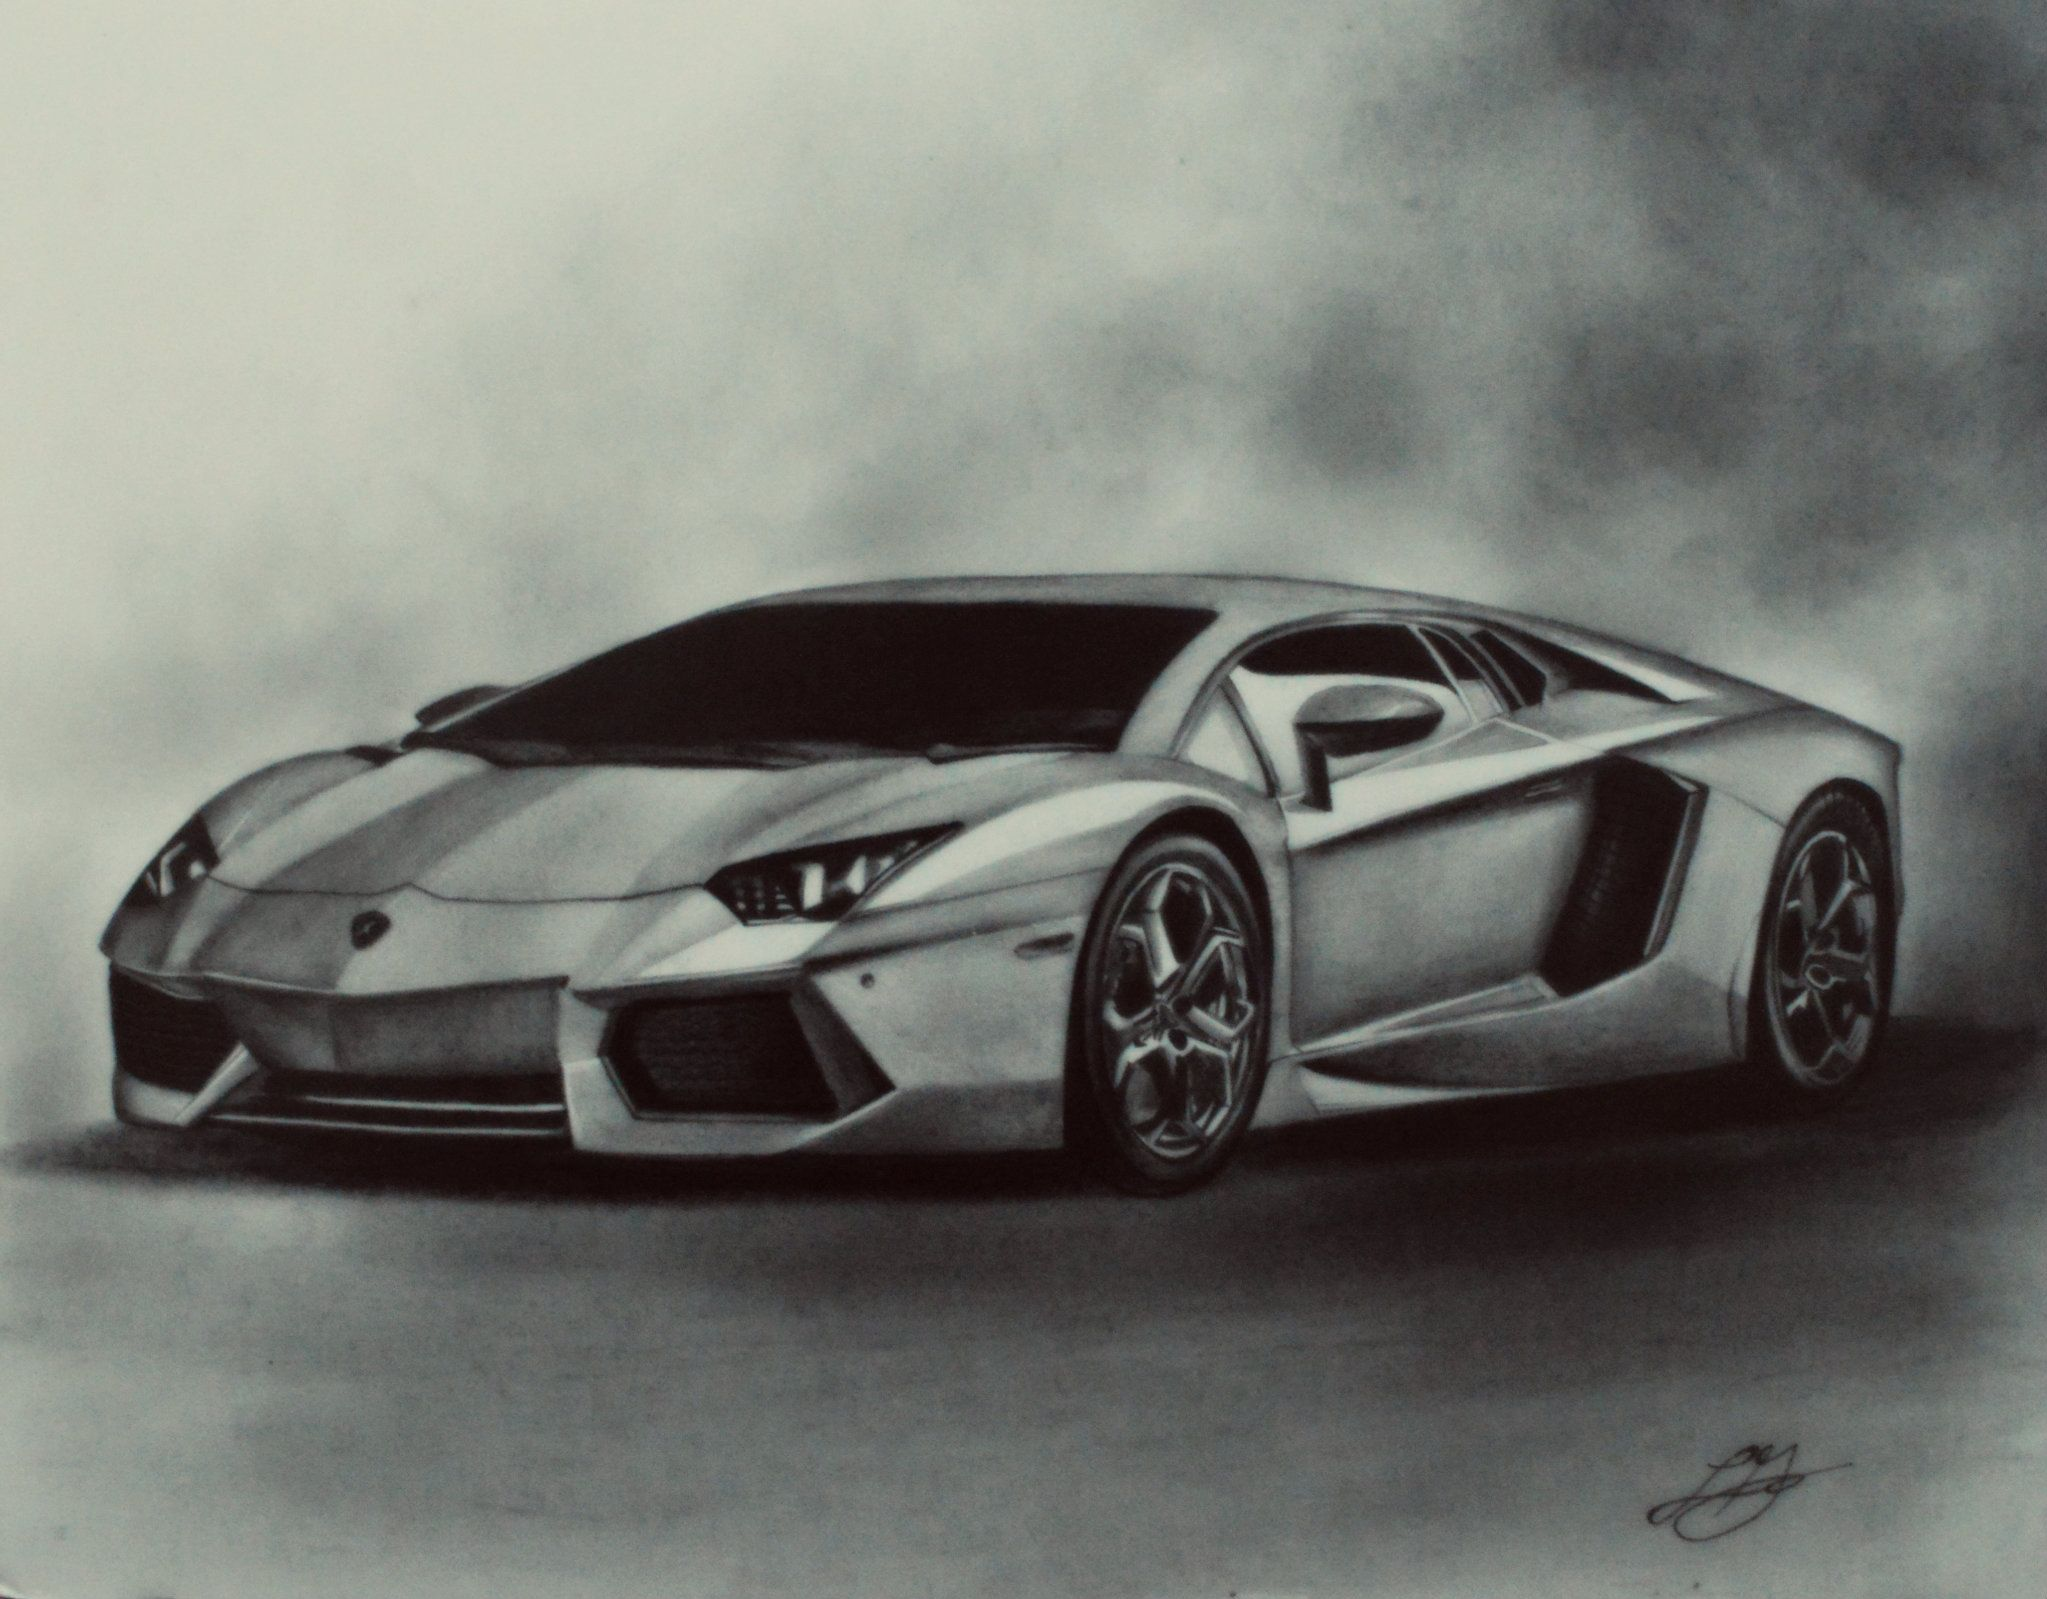 Tonal Drawing Of A Lamborghini Car Drawings Car Drawing Pencil Pencil Drawings